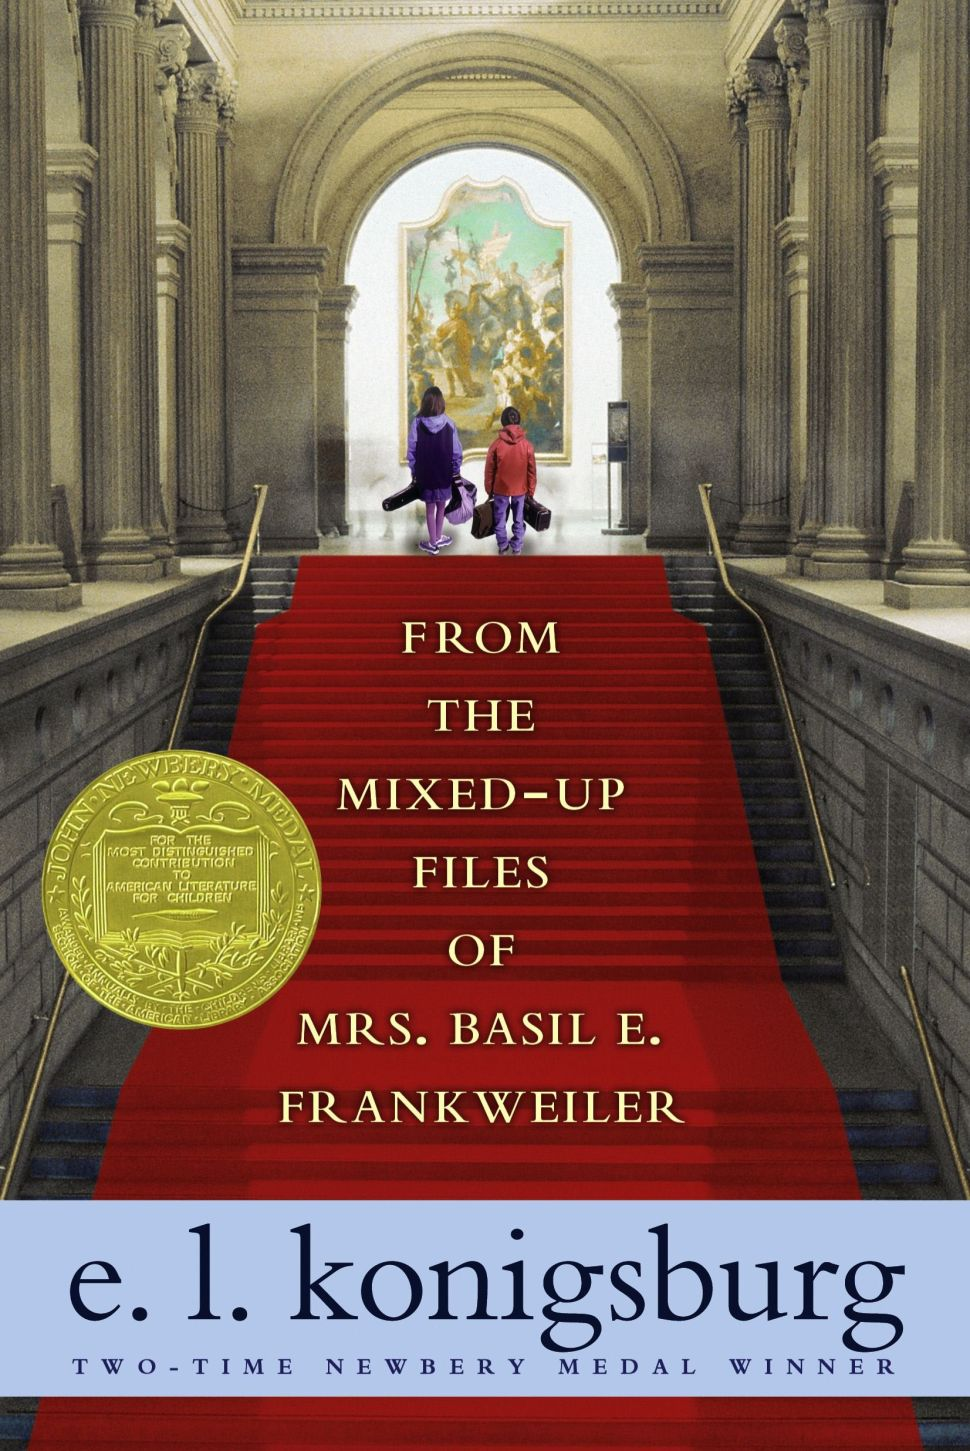 A Popcorn Kernel Inspired 'From the Mixed-Up Files of Mrs. Basil E. Frankweiler'